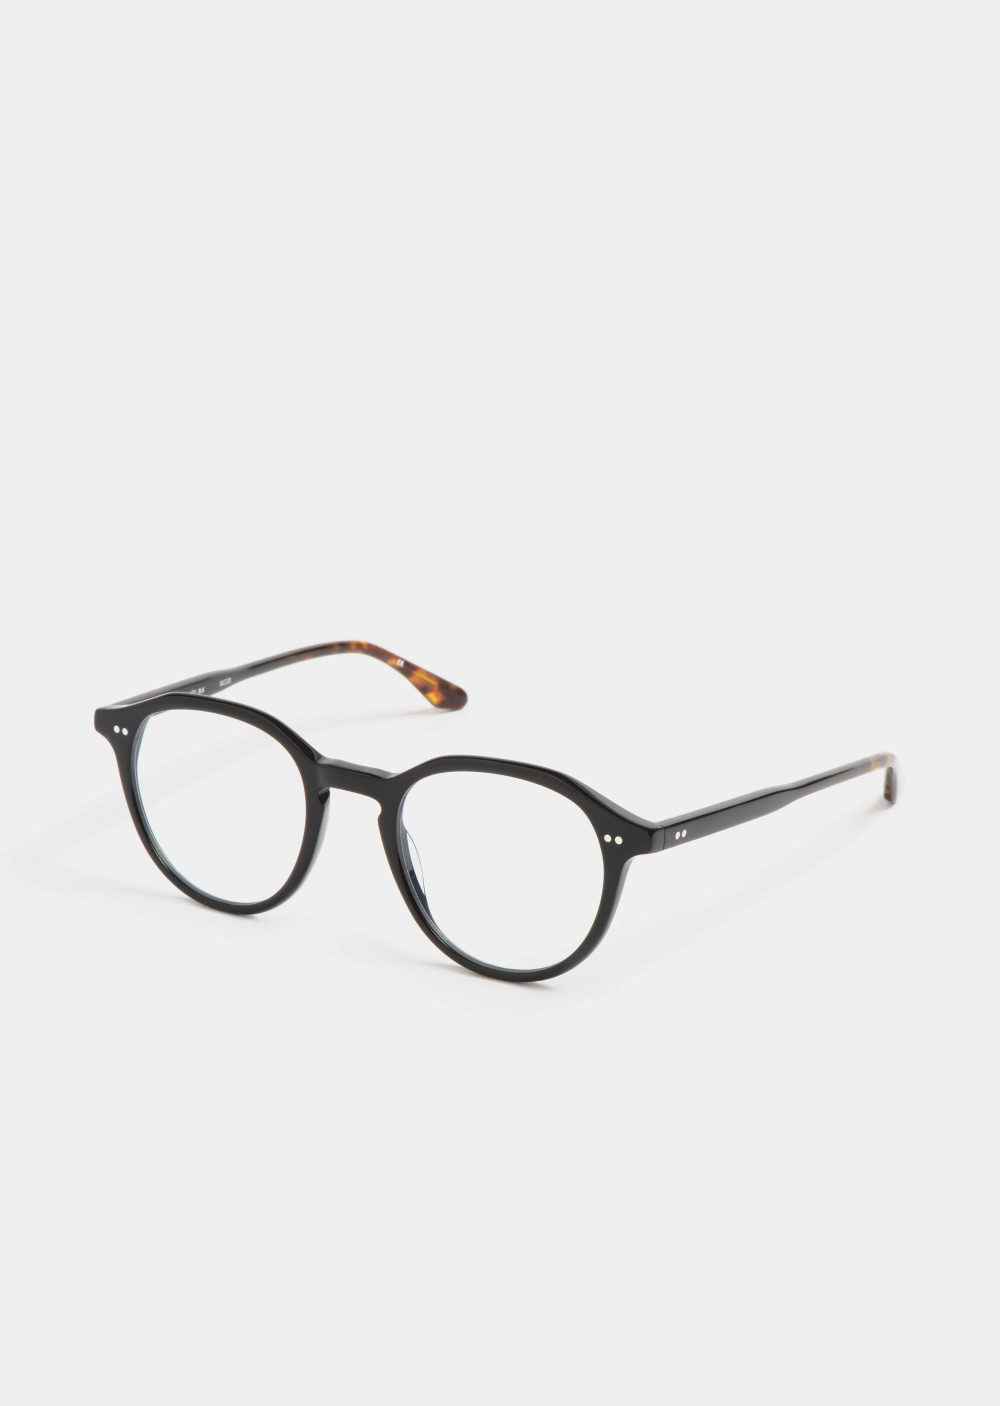 PETER AND MAY -  - LT1 Roméo RX black